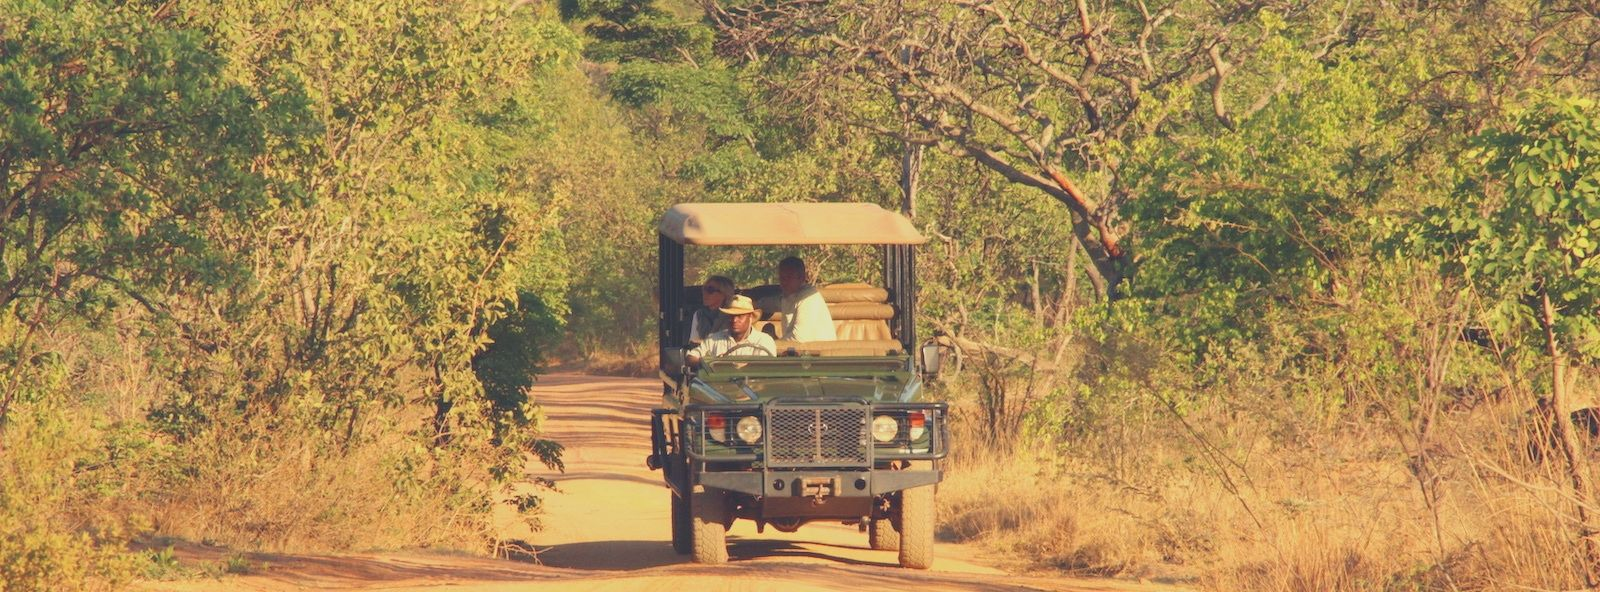 A game drive vehicle in Africa with a couple of tourists on board heading towards the camera on a dust road with thick bush on either side of the vehicle